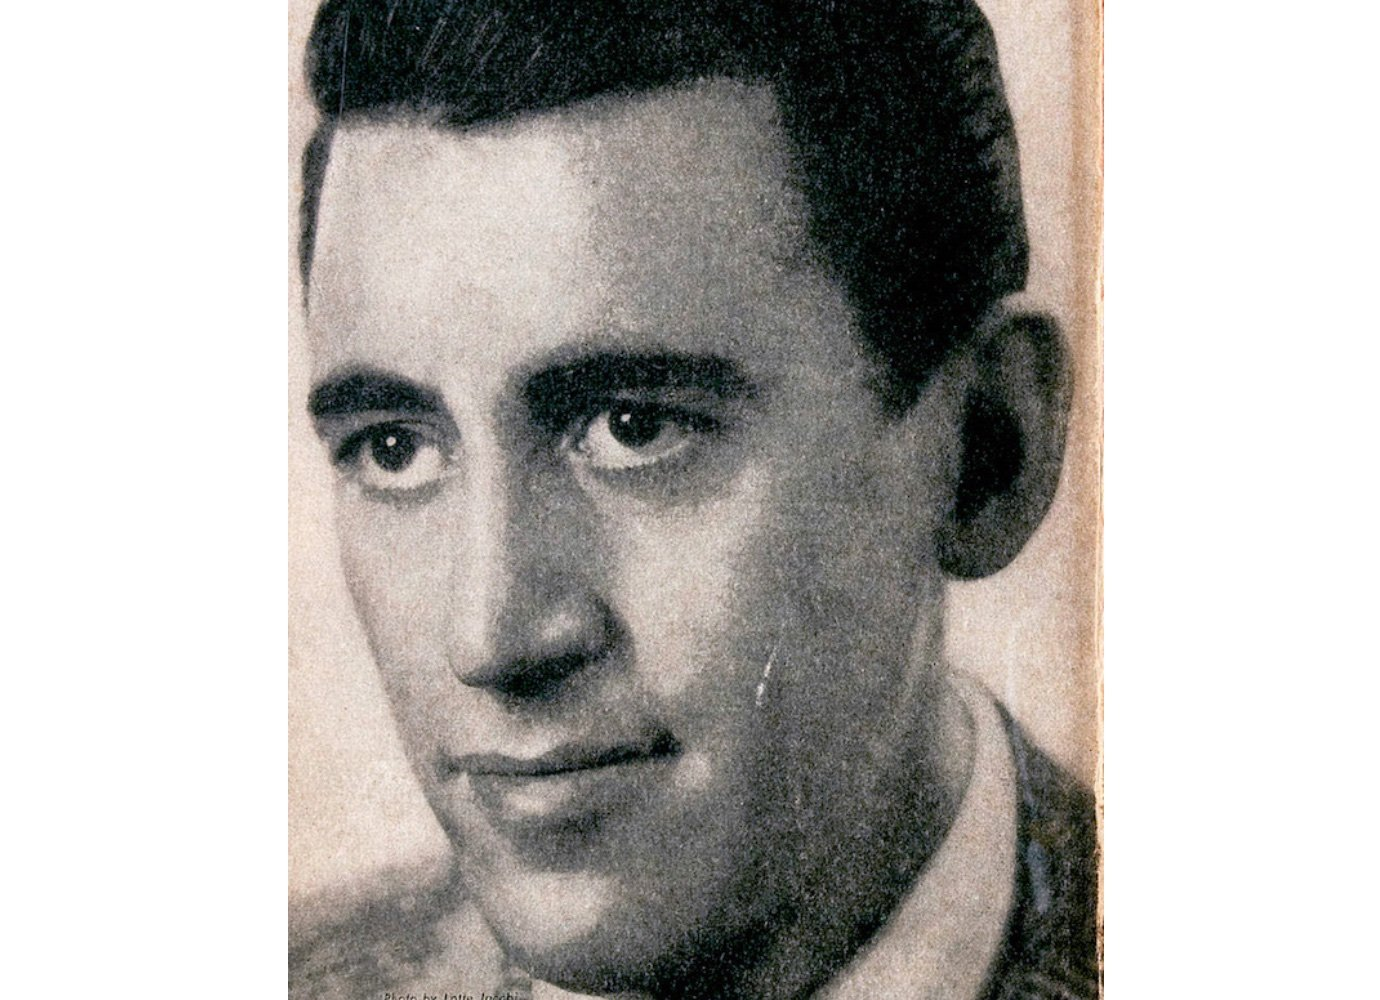 J.D. Salinger monument erected in Lithuania